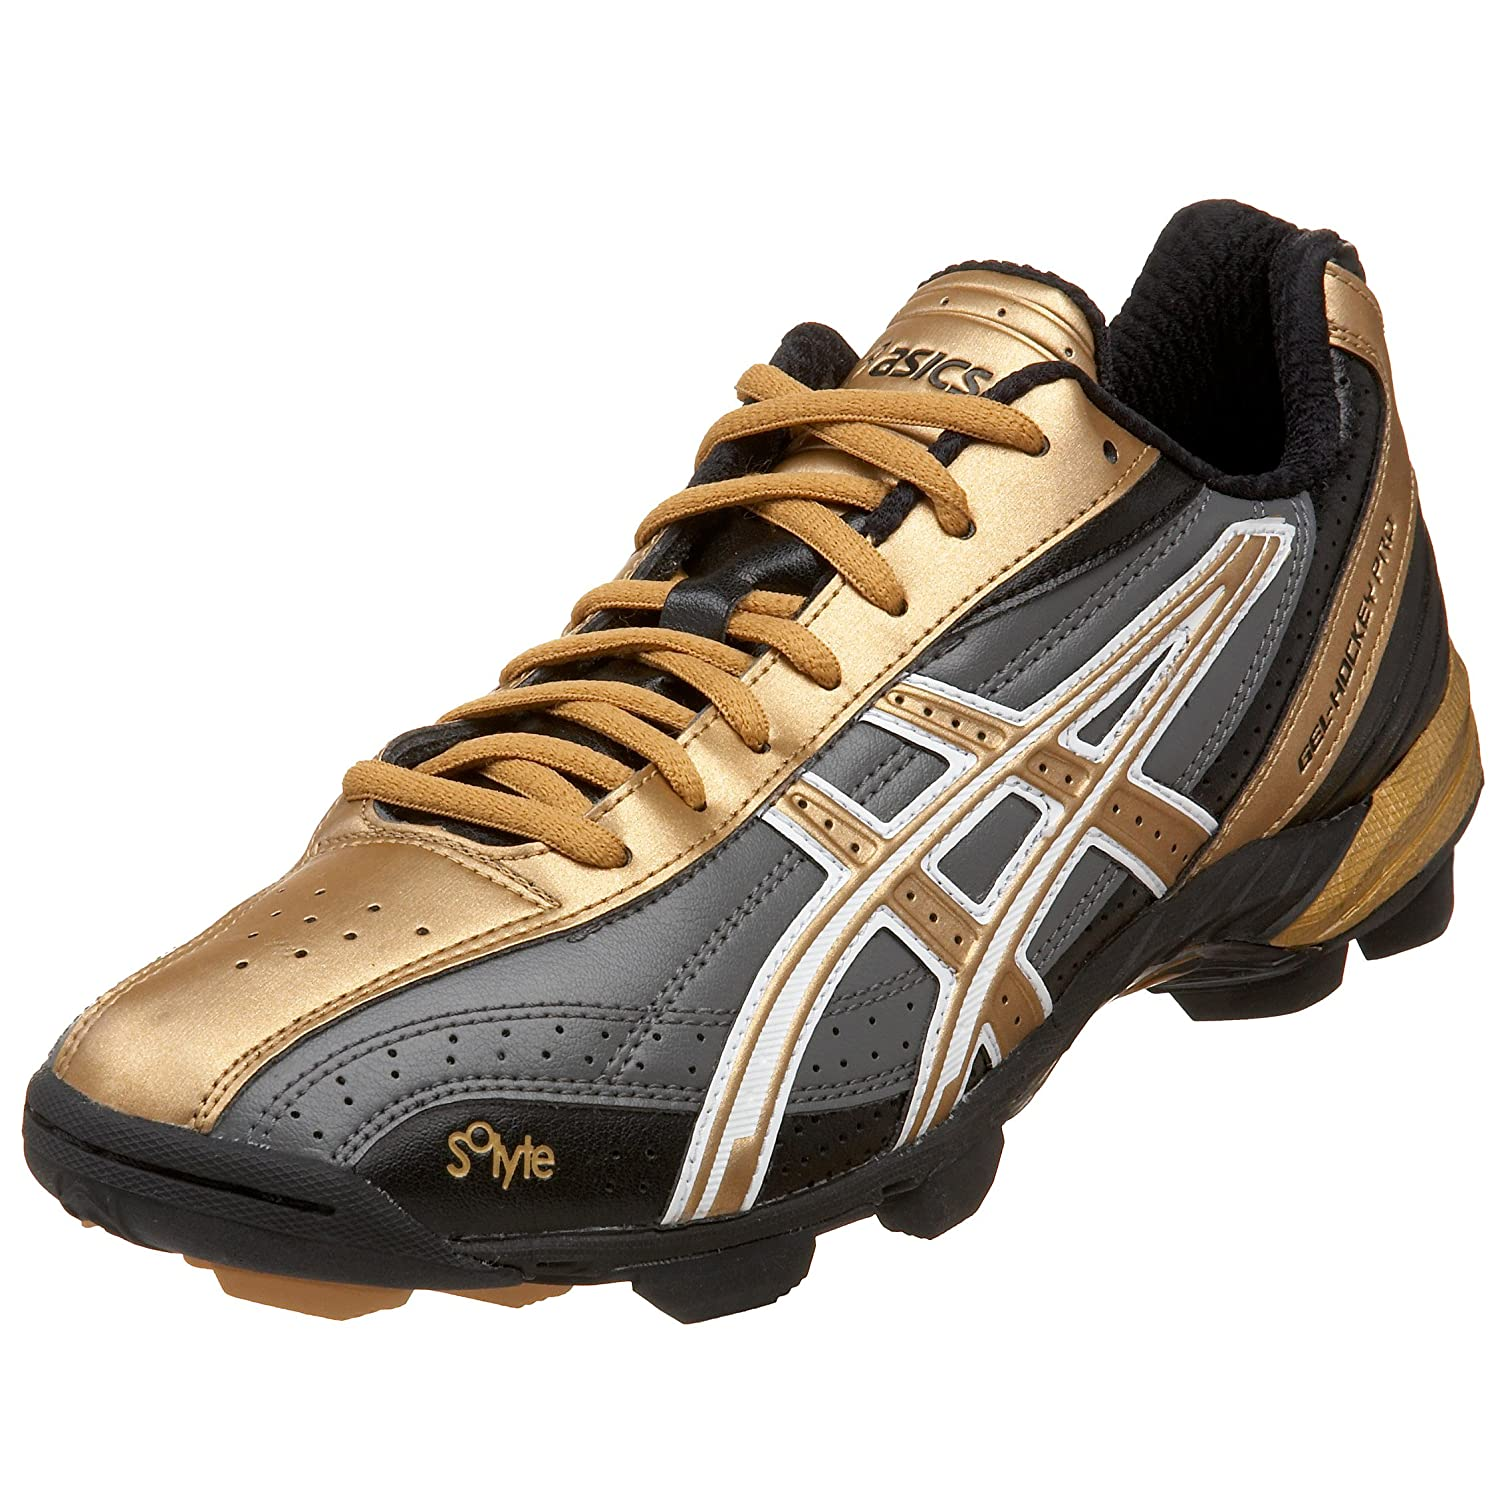 ASICS Men's GEL-Hockey Pro Field Shoe GEL-Hockey Pro (M)